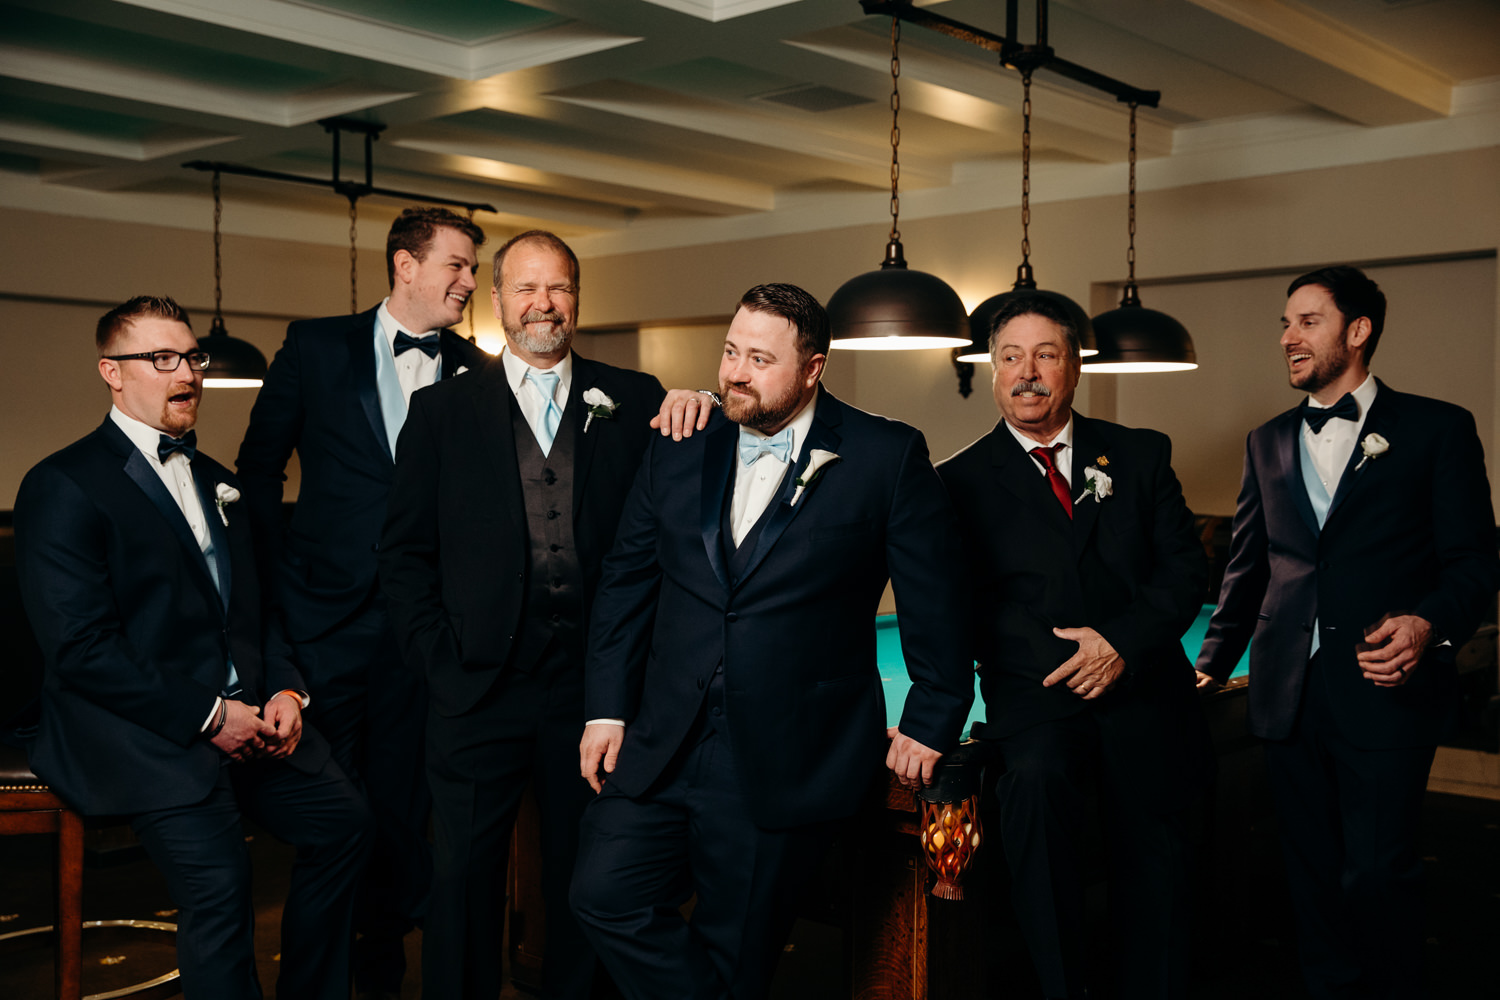 Grant Beachy photography goshen chicago south bend wedding editorial fitness-005.jpg